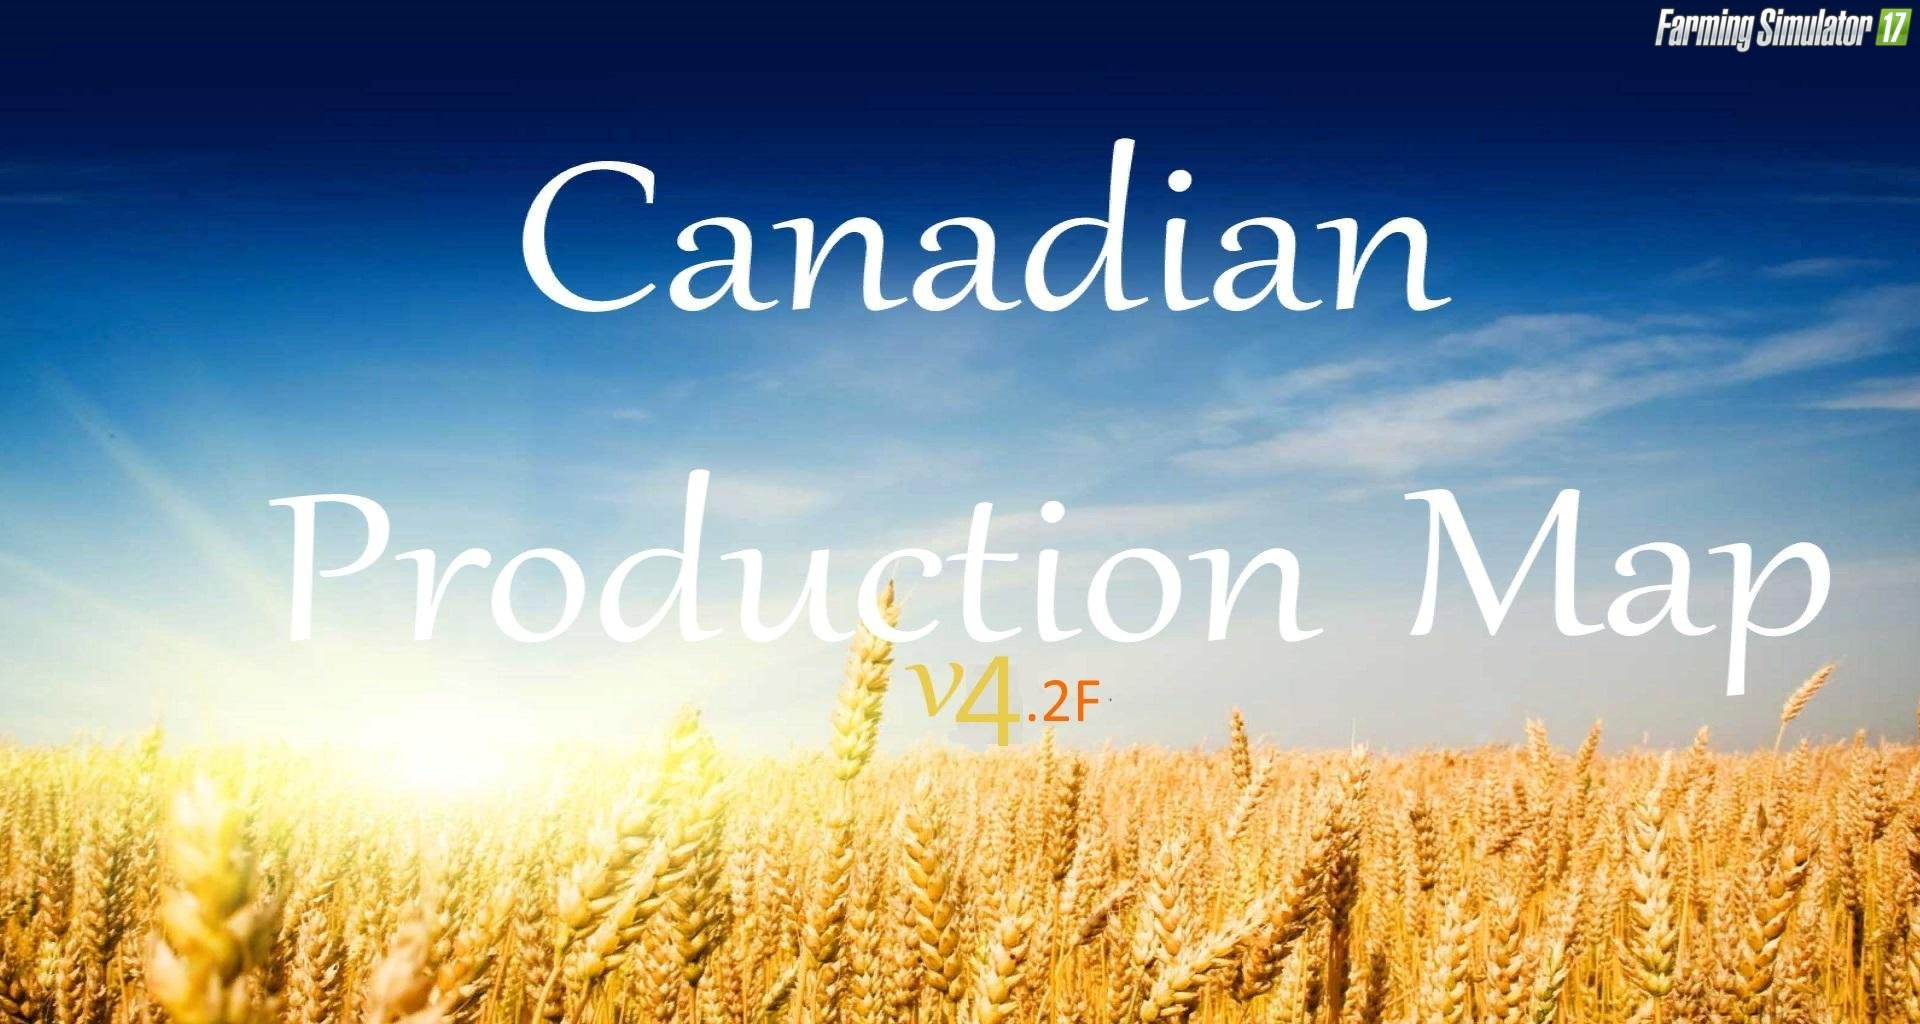 Canadian Production Map v4.2F for FS17